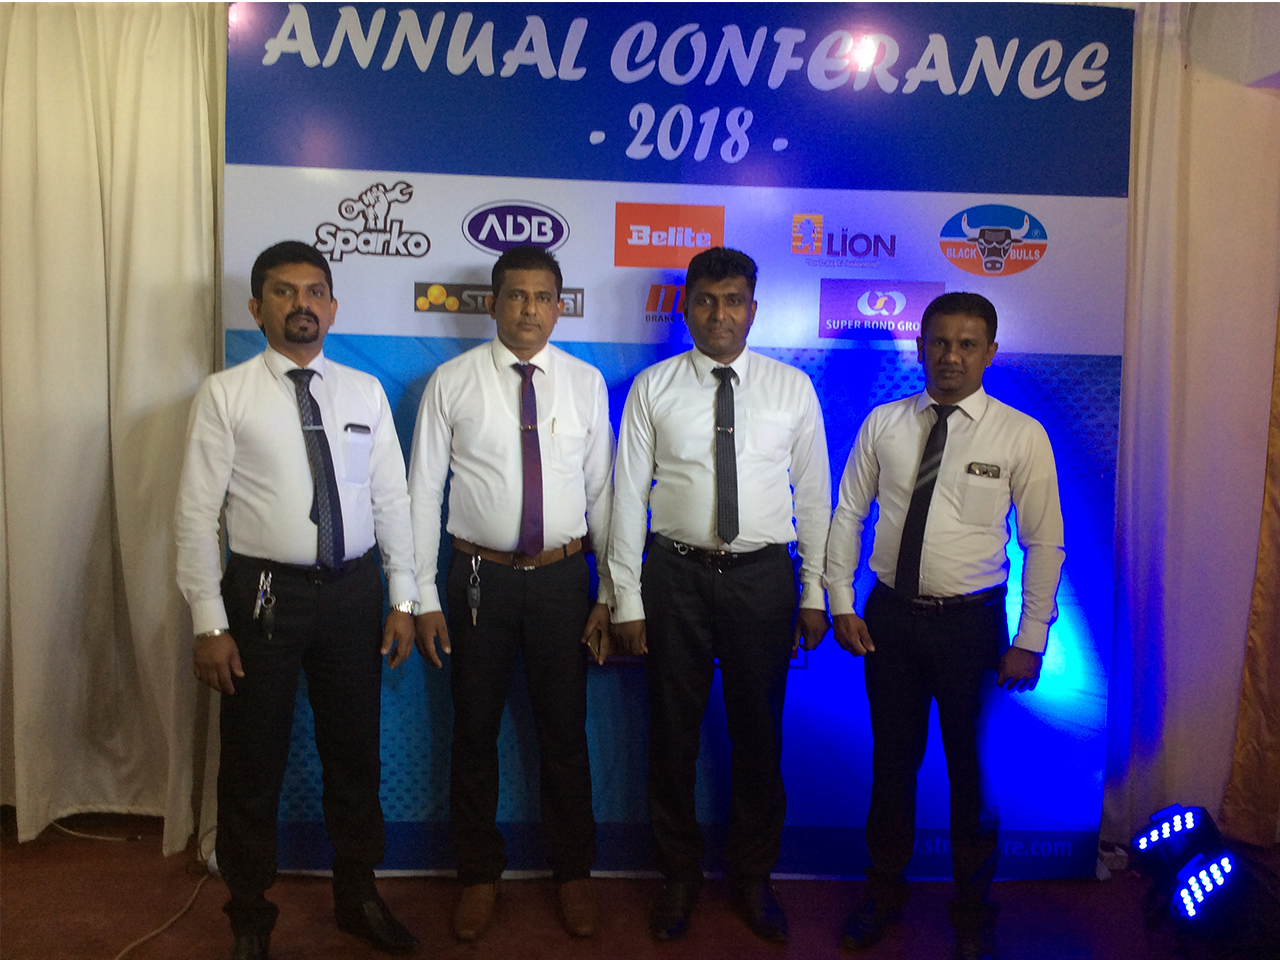 annual-conference-1